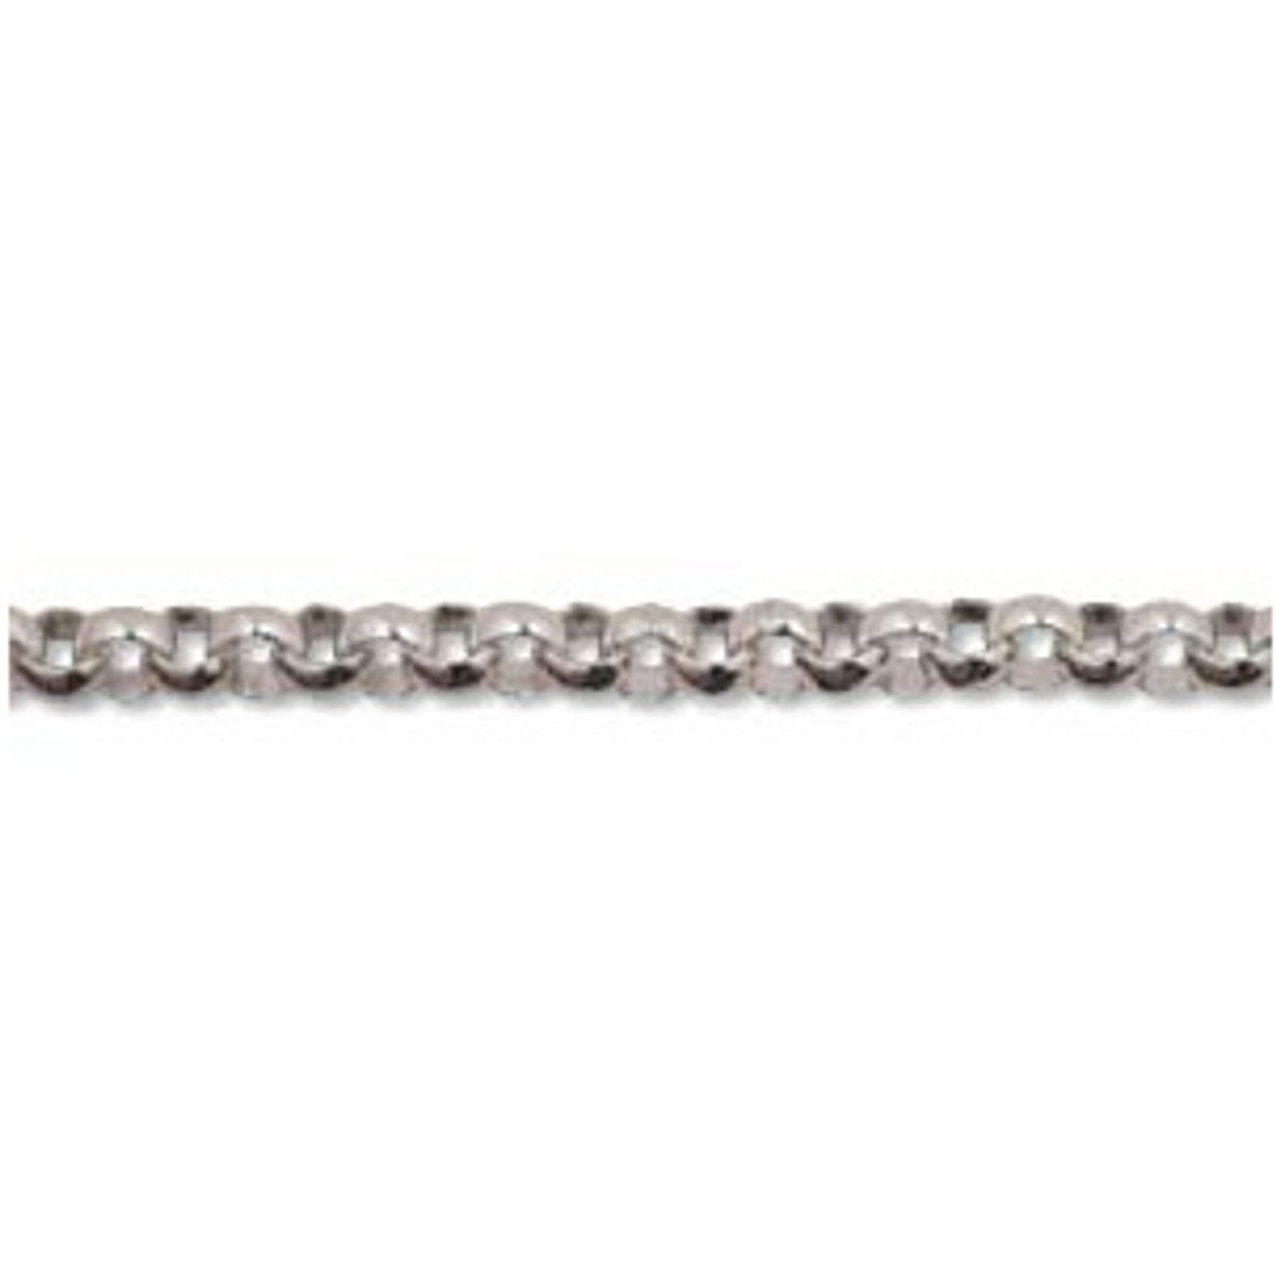 Small Round Rolo Chain - Light weight - 2.1mm